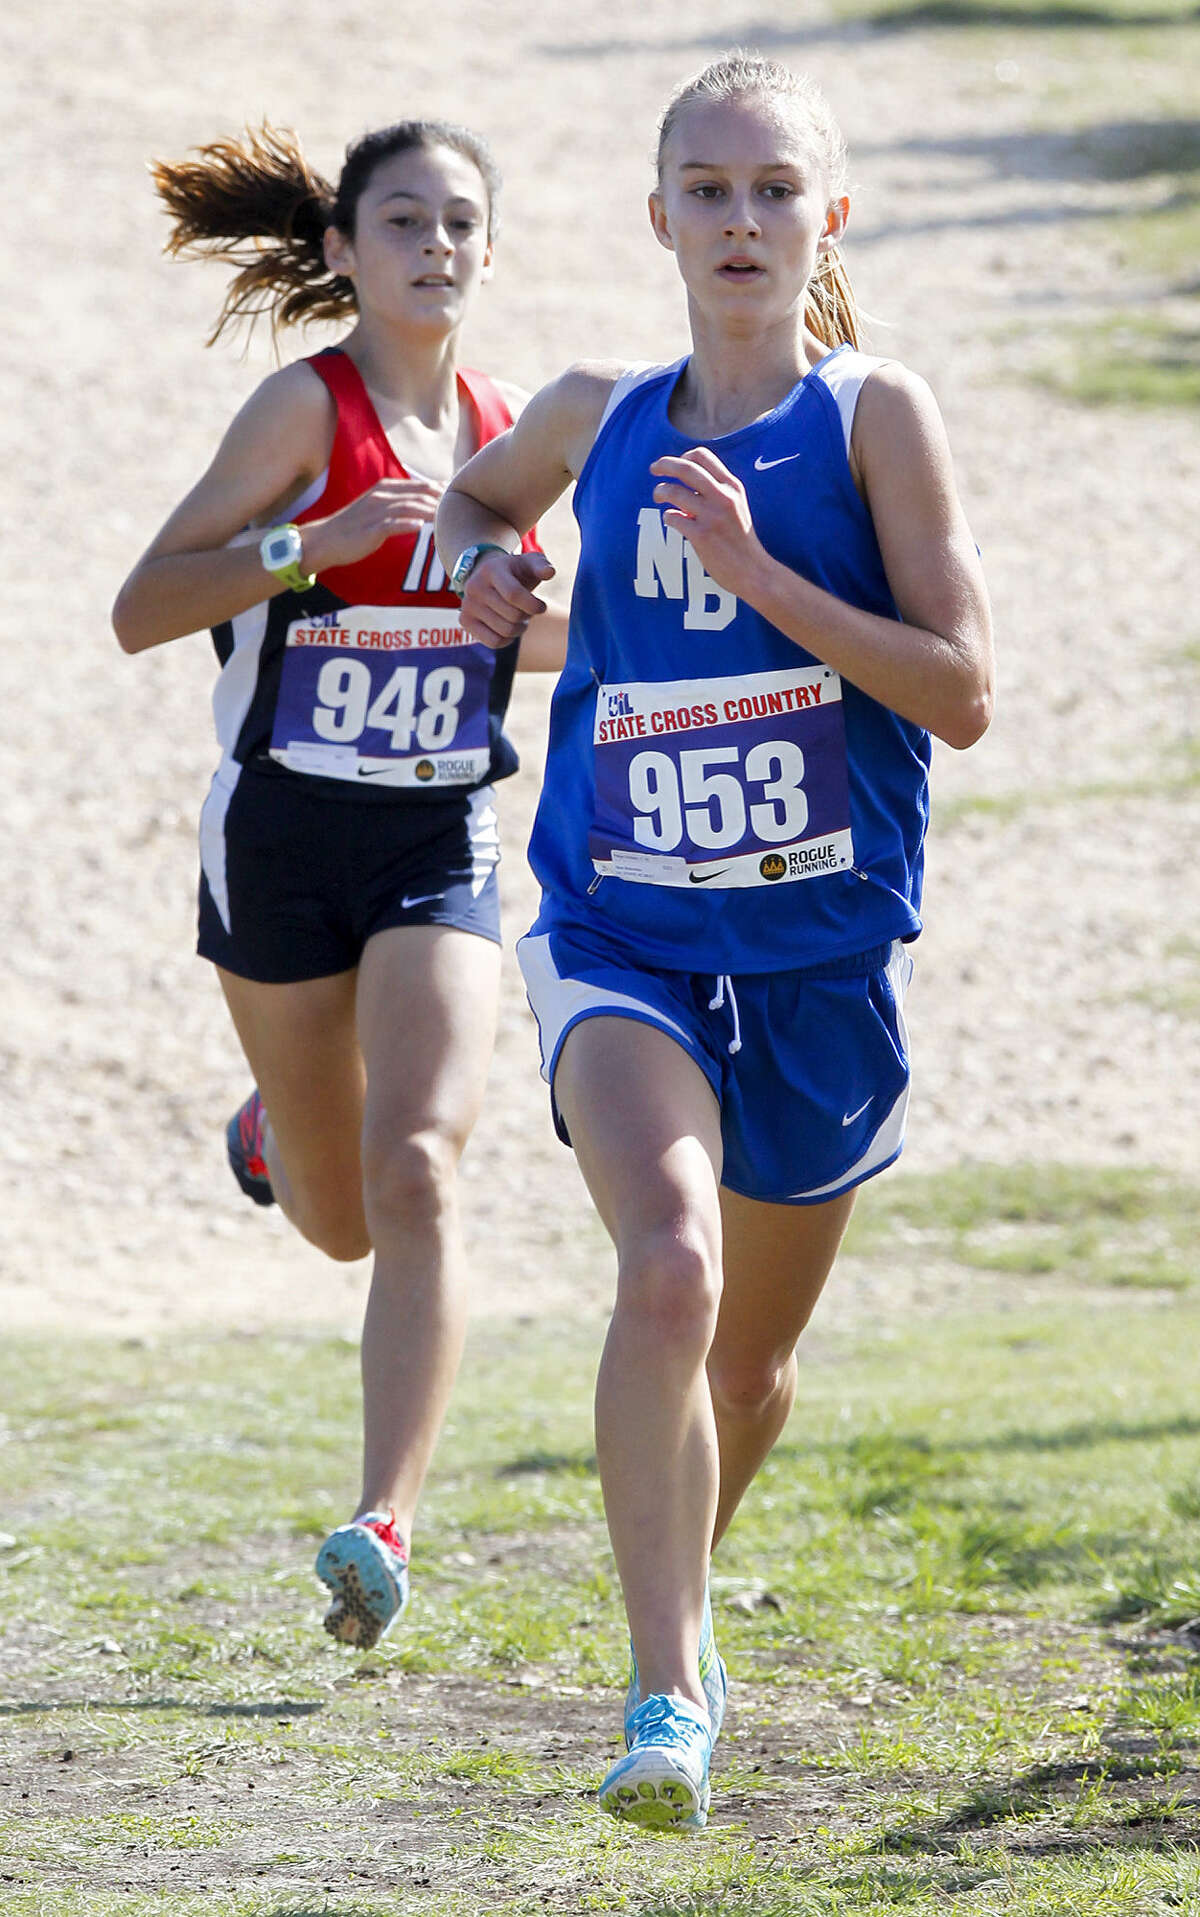 Paige Hofstead of New Braunfels runs ahead of Manvel's Julia Heymach in the 5A girls 5000 meter race during the state cross country meet at Old Settlers Park in Round Rock on Saturday, Nov. 9, 2013. Hofstead finished first overall in the event with a time of 17:36.45 and the Lady Unicorns took second place overall at the meet. MARVIN PFEIFFER/ mpfeiffer@express-news.net